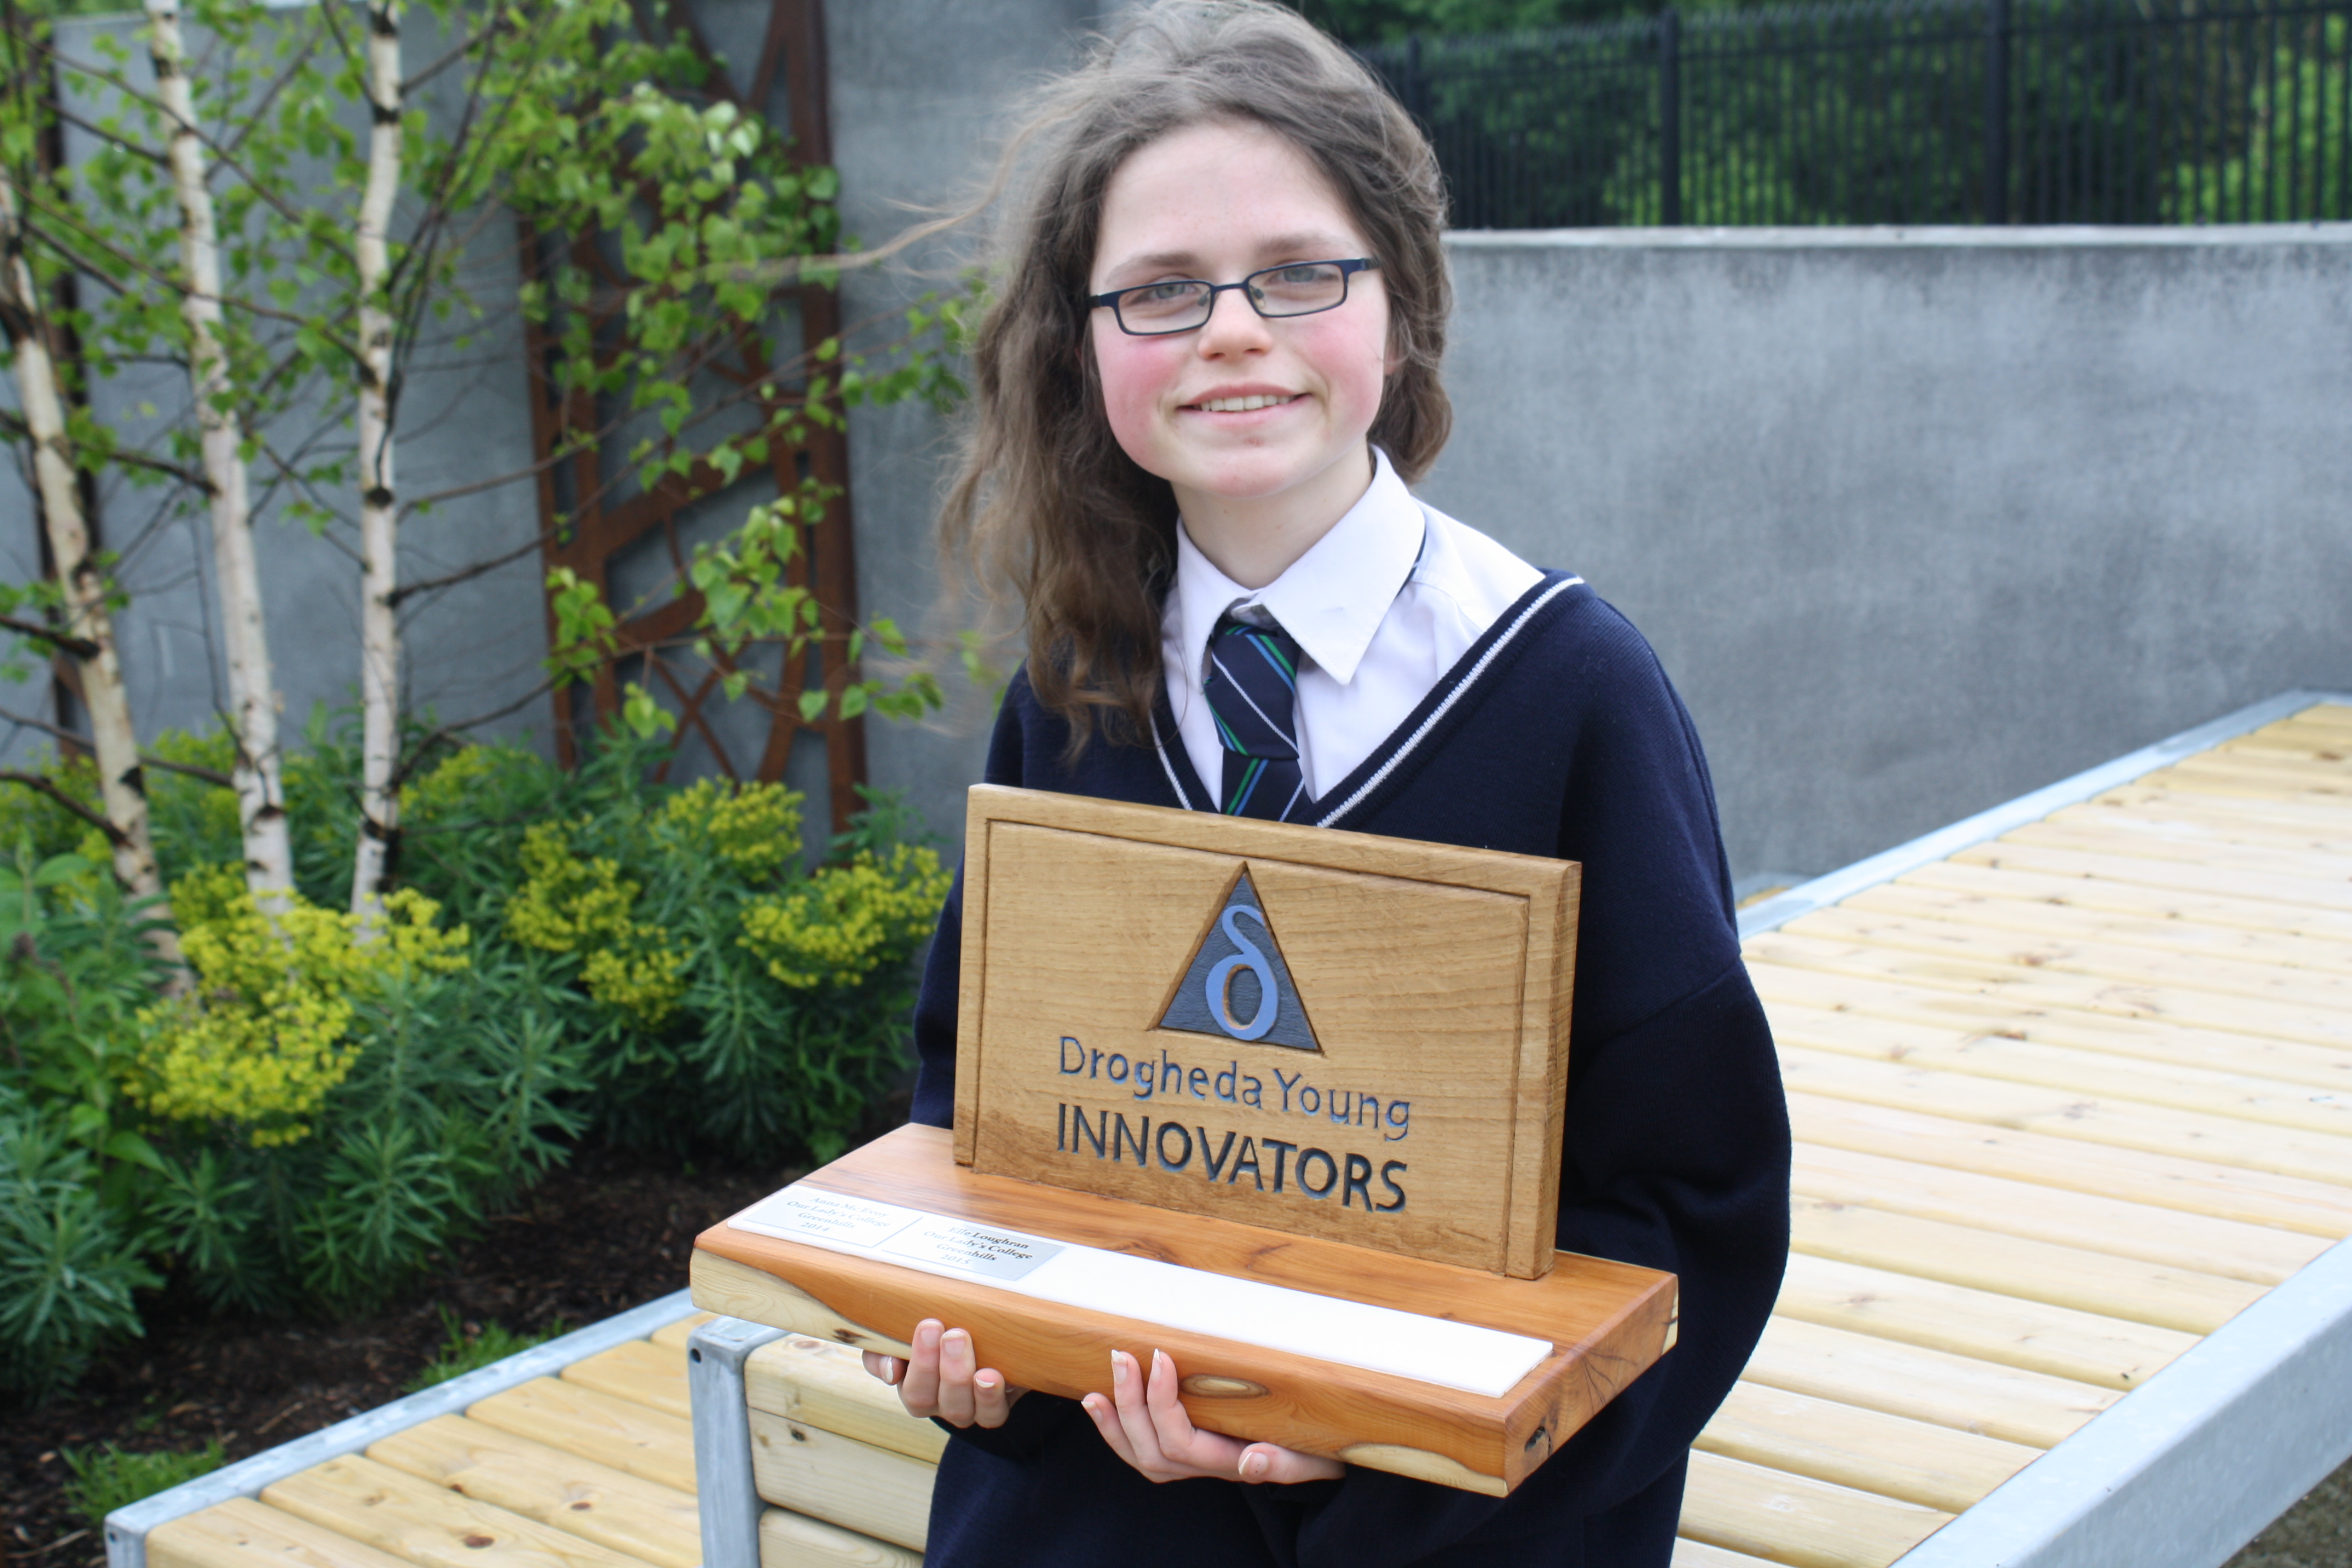 Drogheda Young Innovators 2015 Winner Elle Loughran